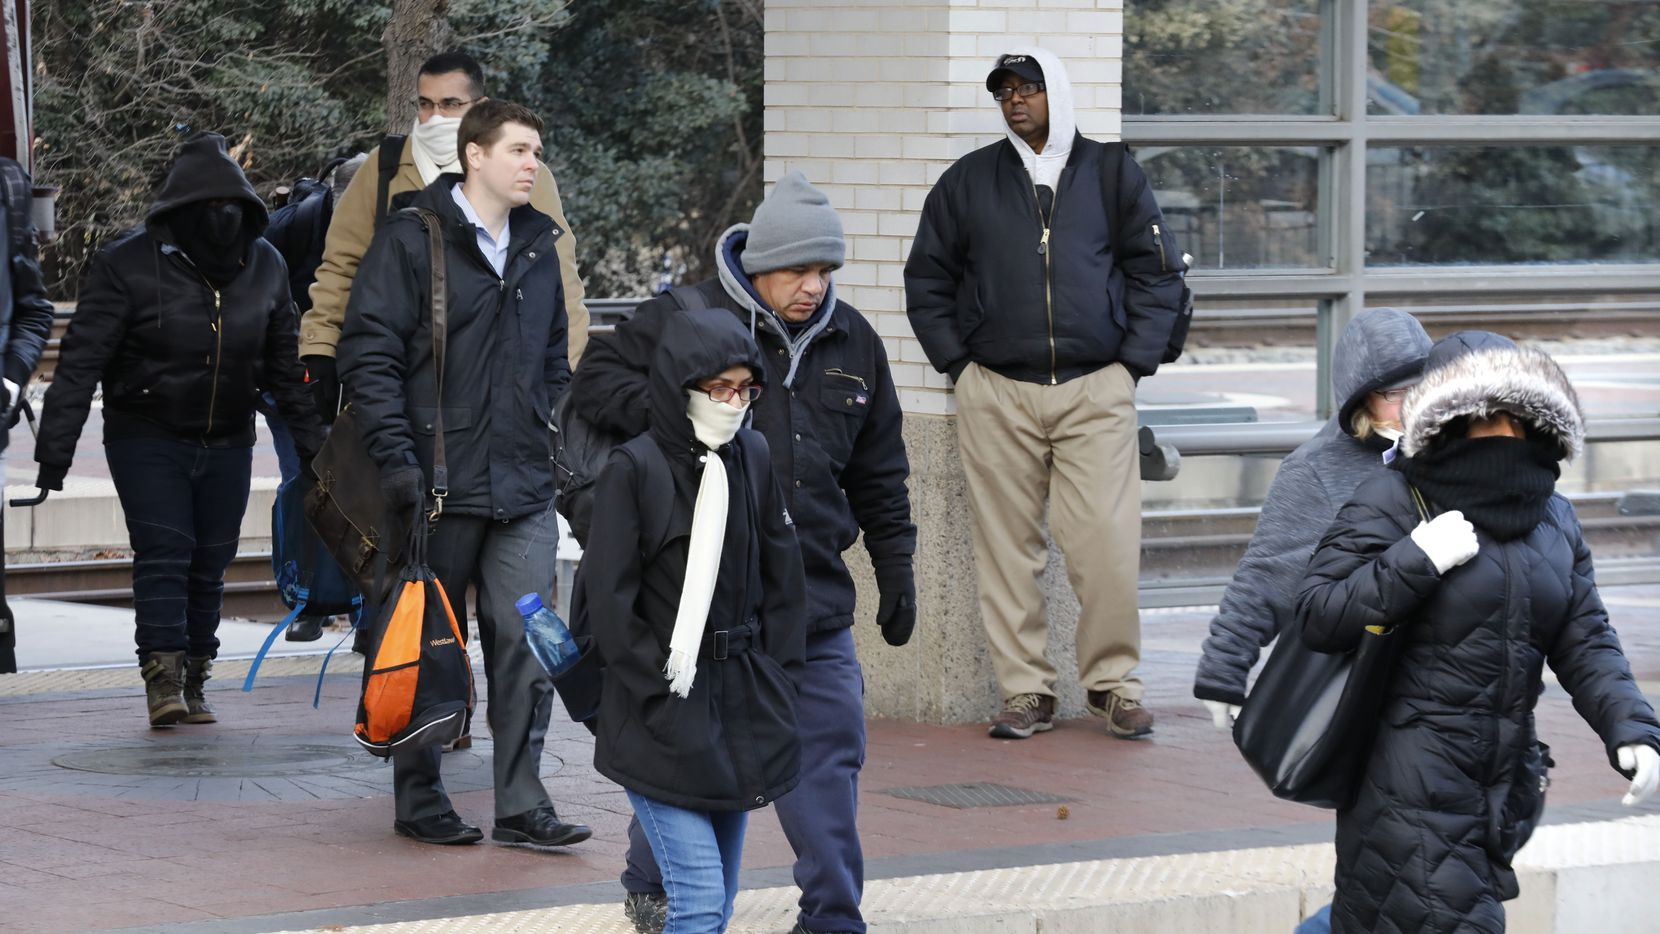 The front is expected to arrive before dawn Sunday and push temperatures into the mid-30s by Monday morning, the National Weather Service says.